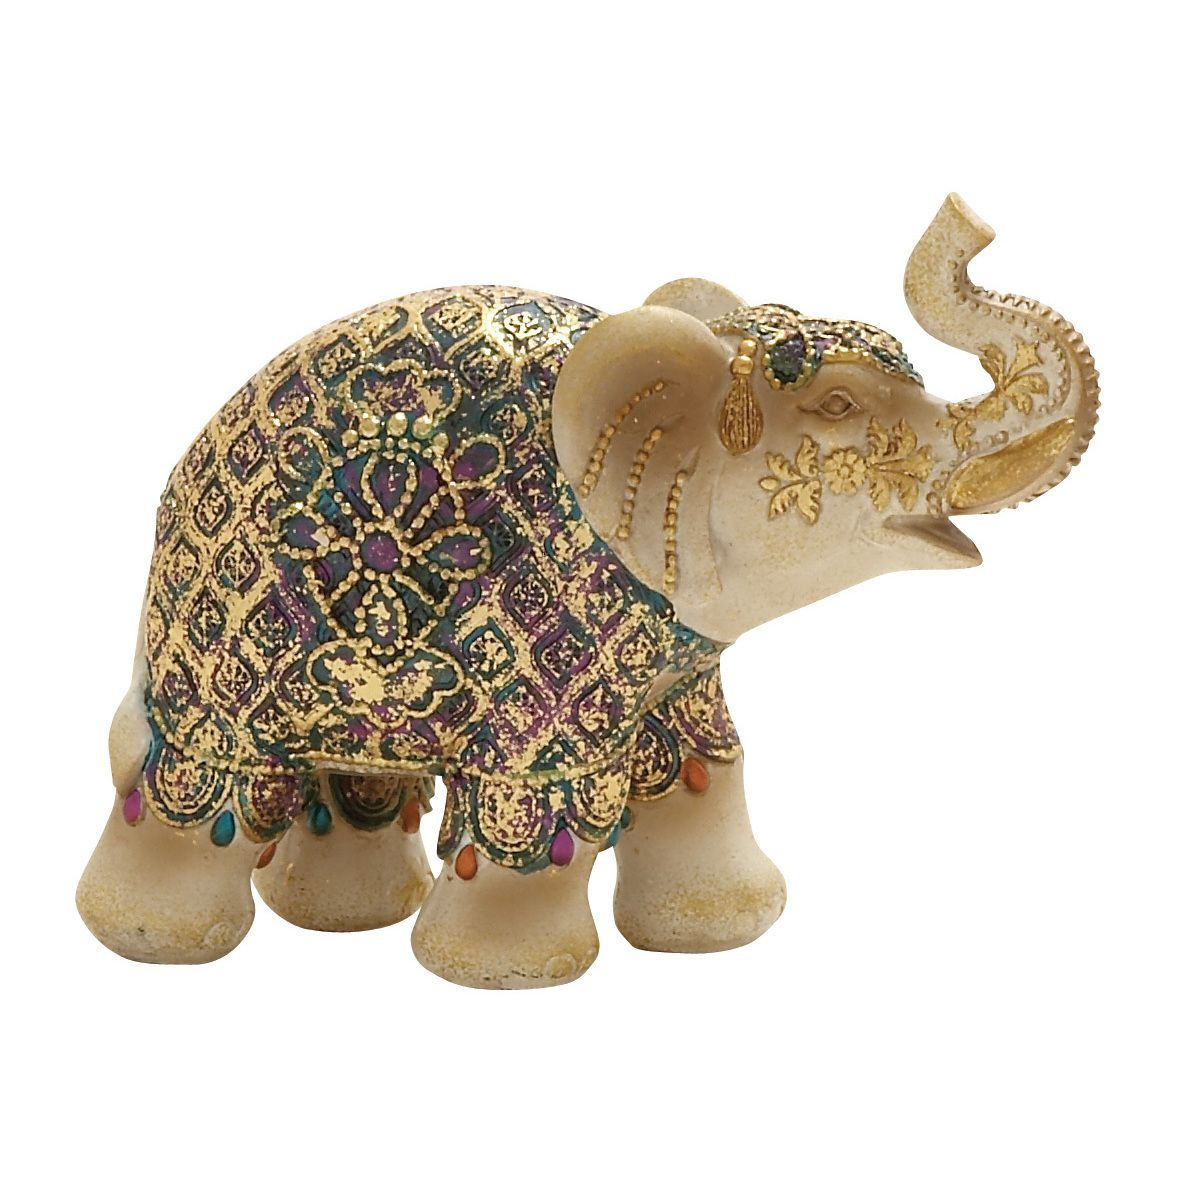 The elephant collectibles attract all the good energies with their the elephant collectibles attract all the good energies with their trunks up in the air elephants are a symbol of power and good luck in the south east biocorpaavc